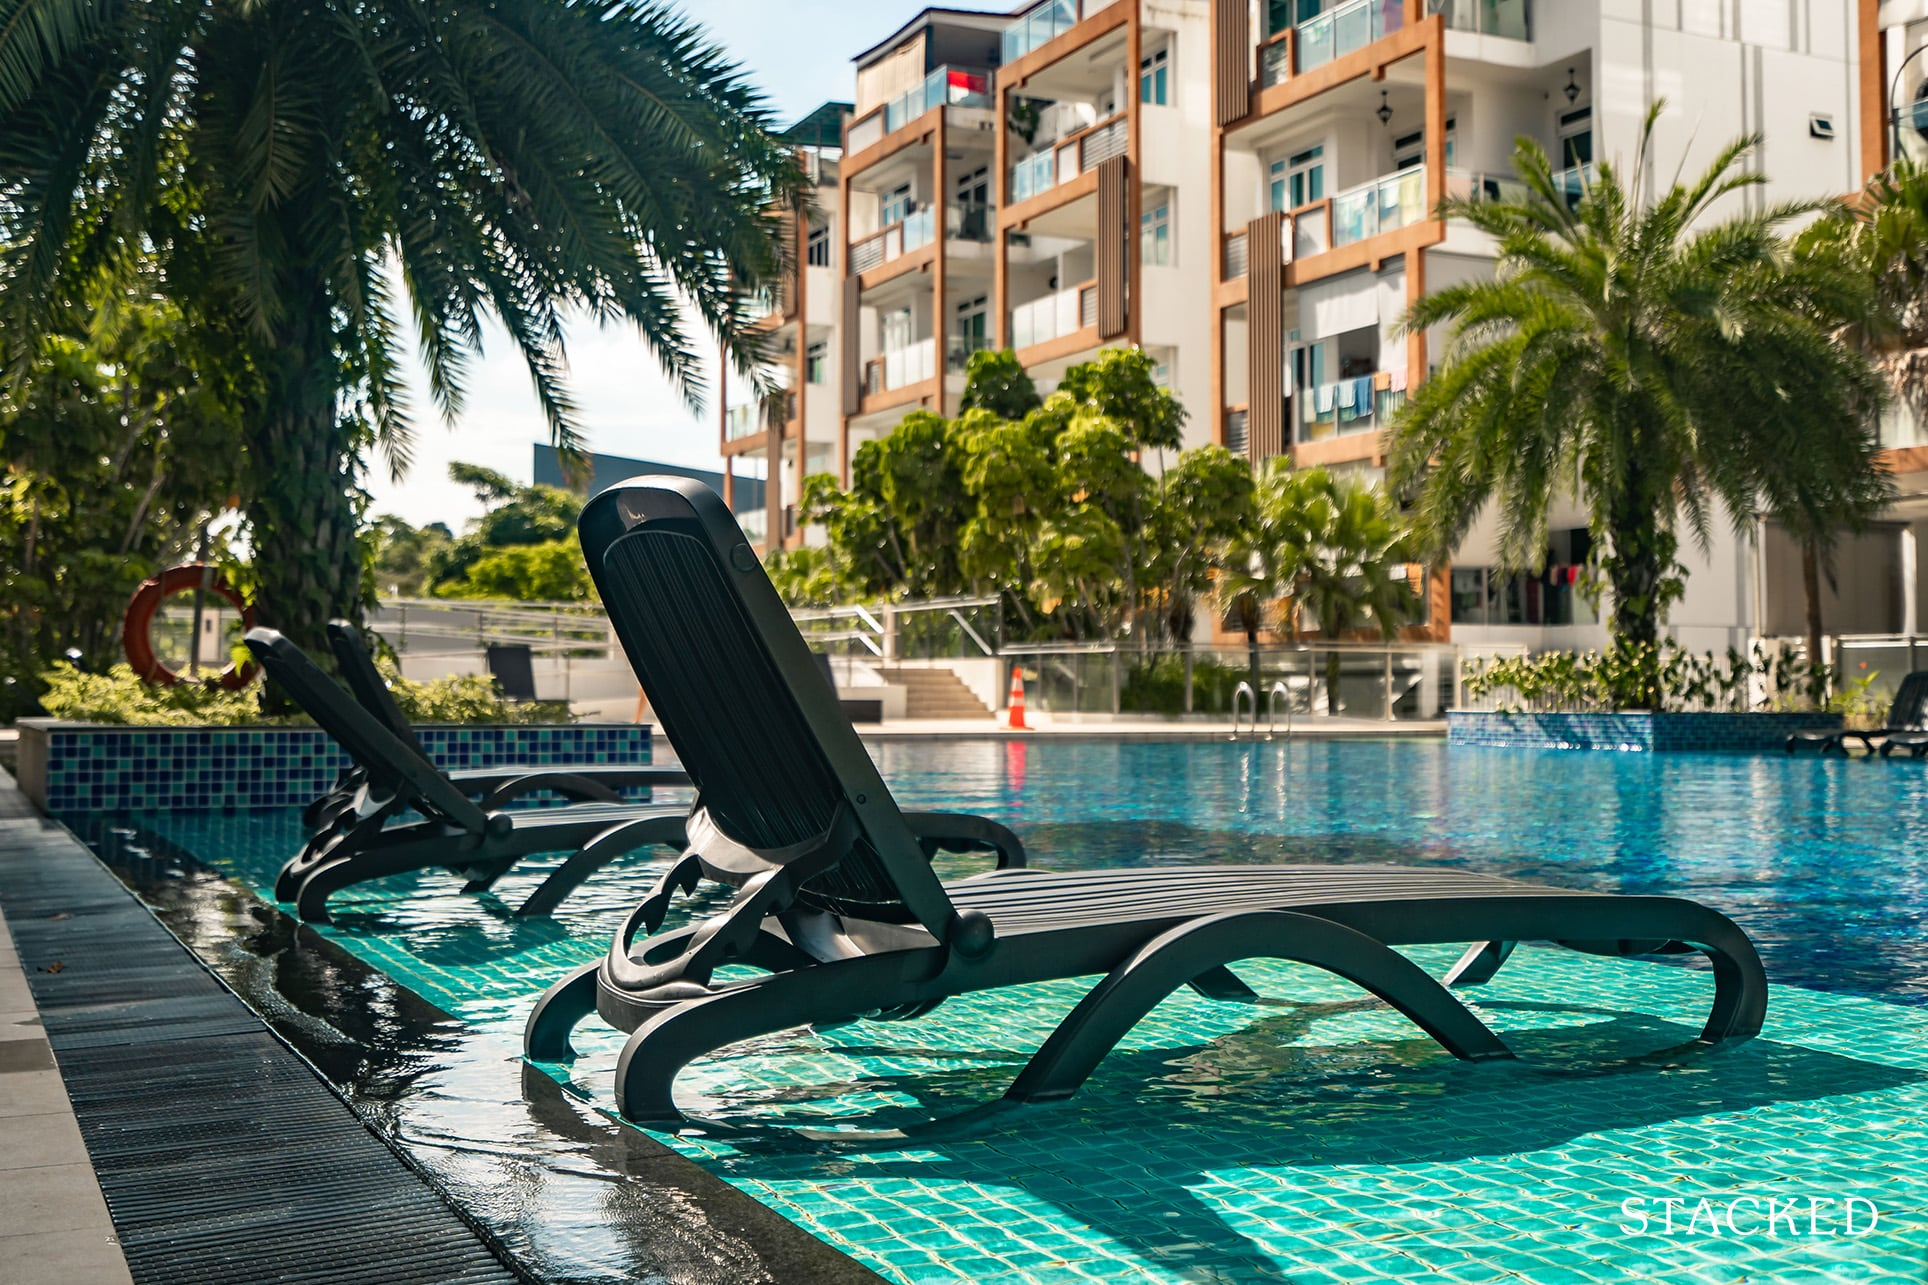 parc rosewood deck chairs swimming pool